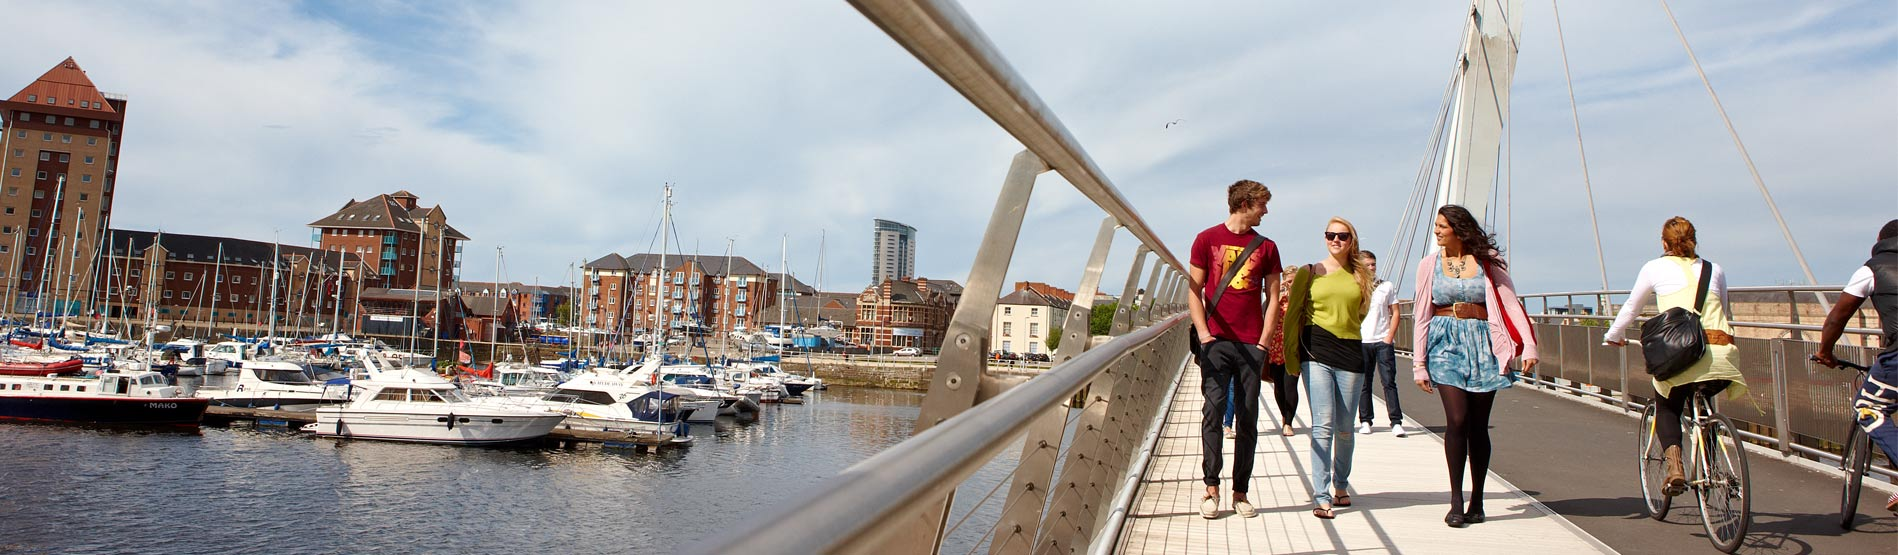 People walking over the bridge in SA1, Swansea with the Marina in the Background